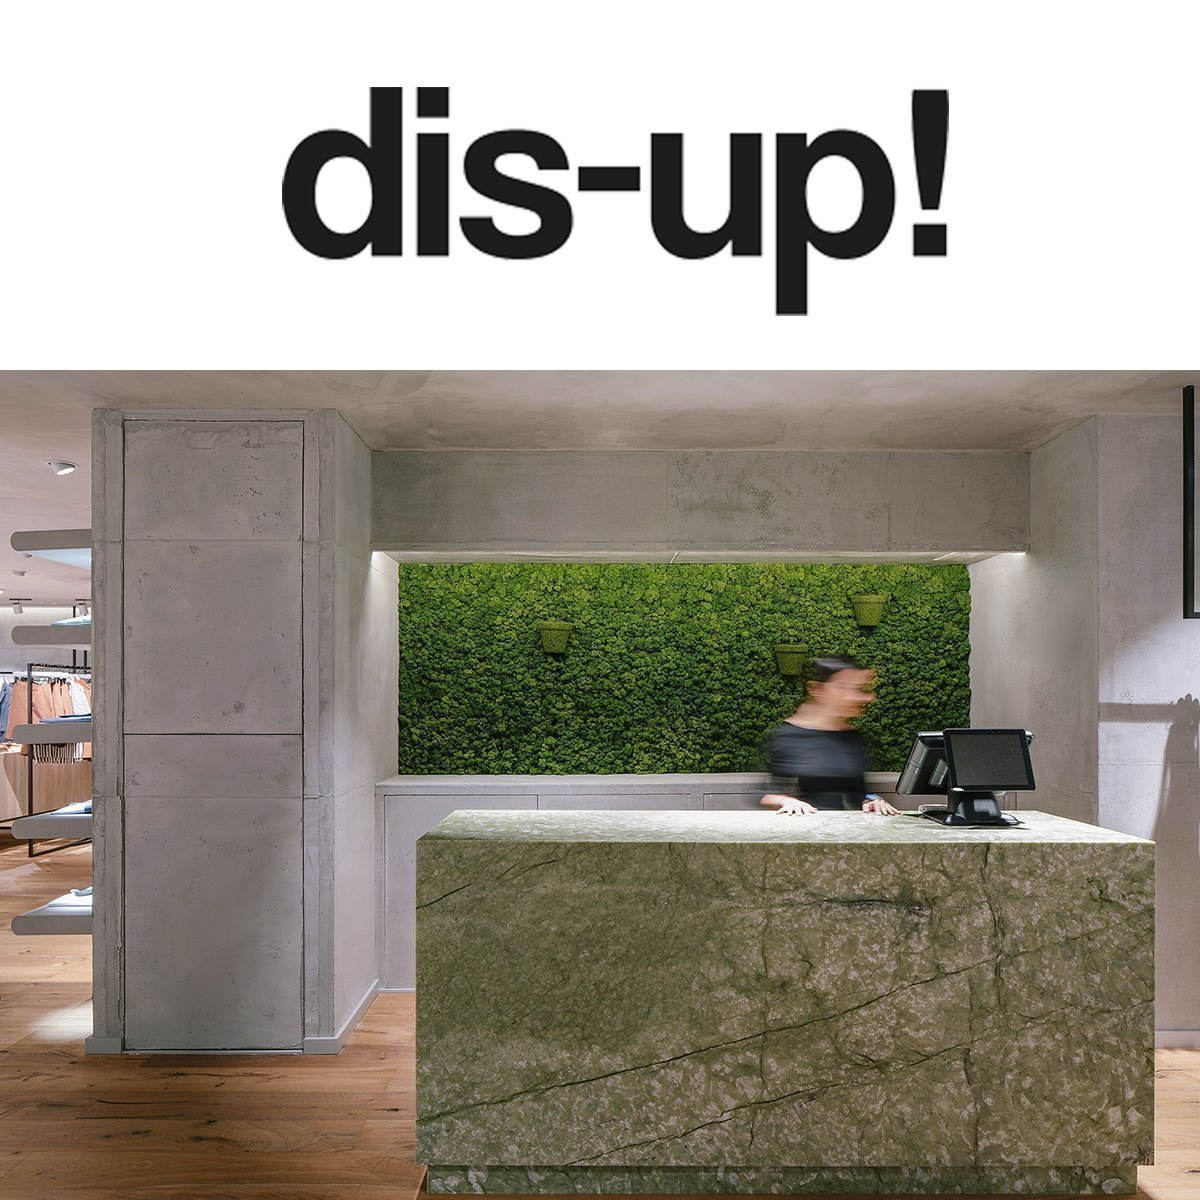 Dis-up! Magazine